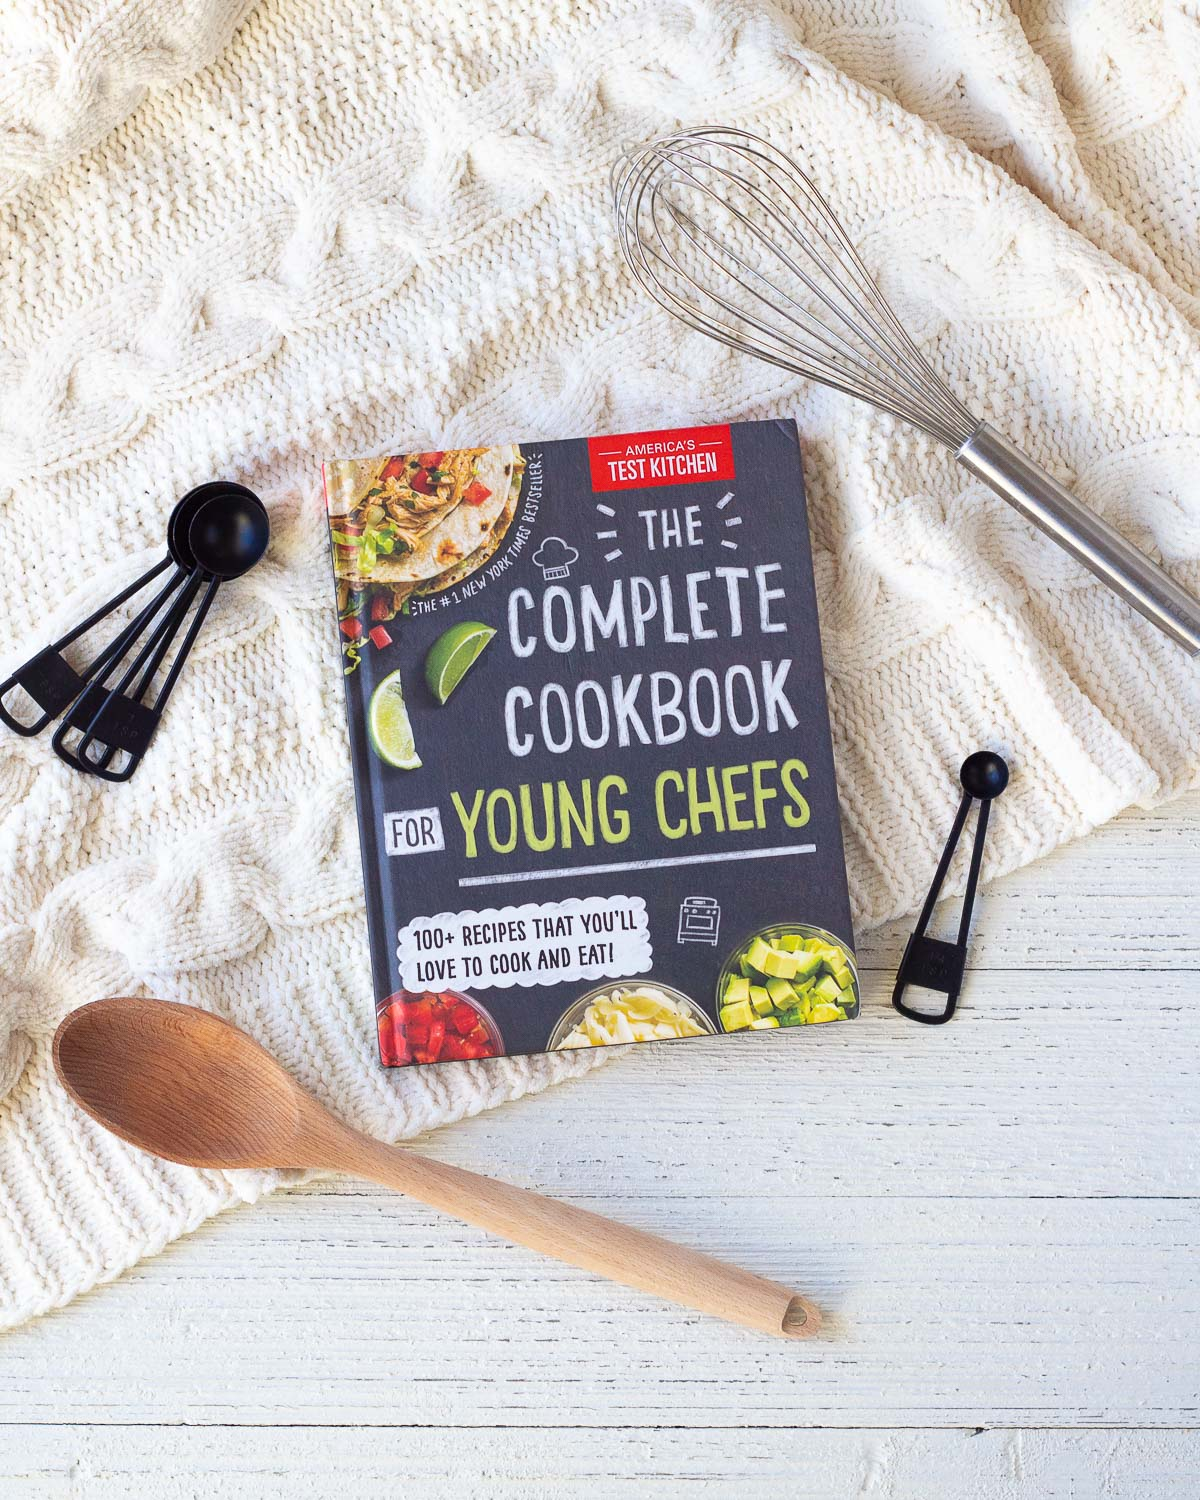 A children's cookbook on a wooden surface surrounded by cooking utensils.